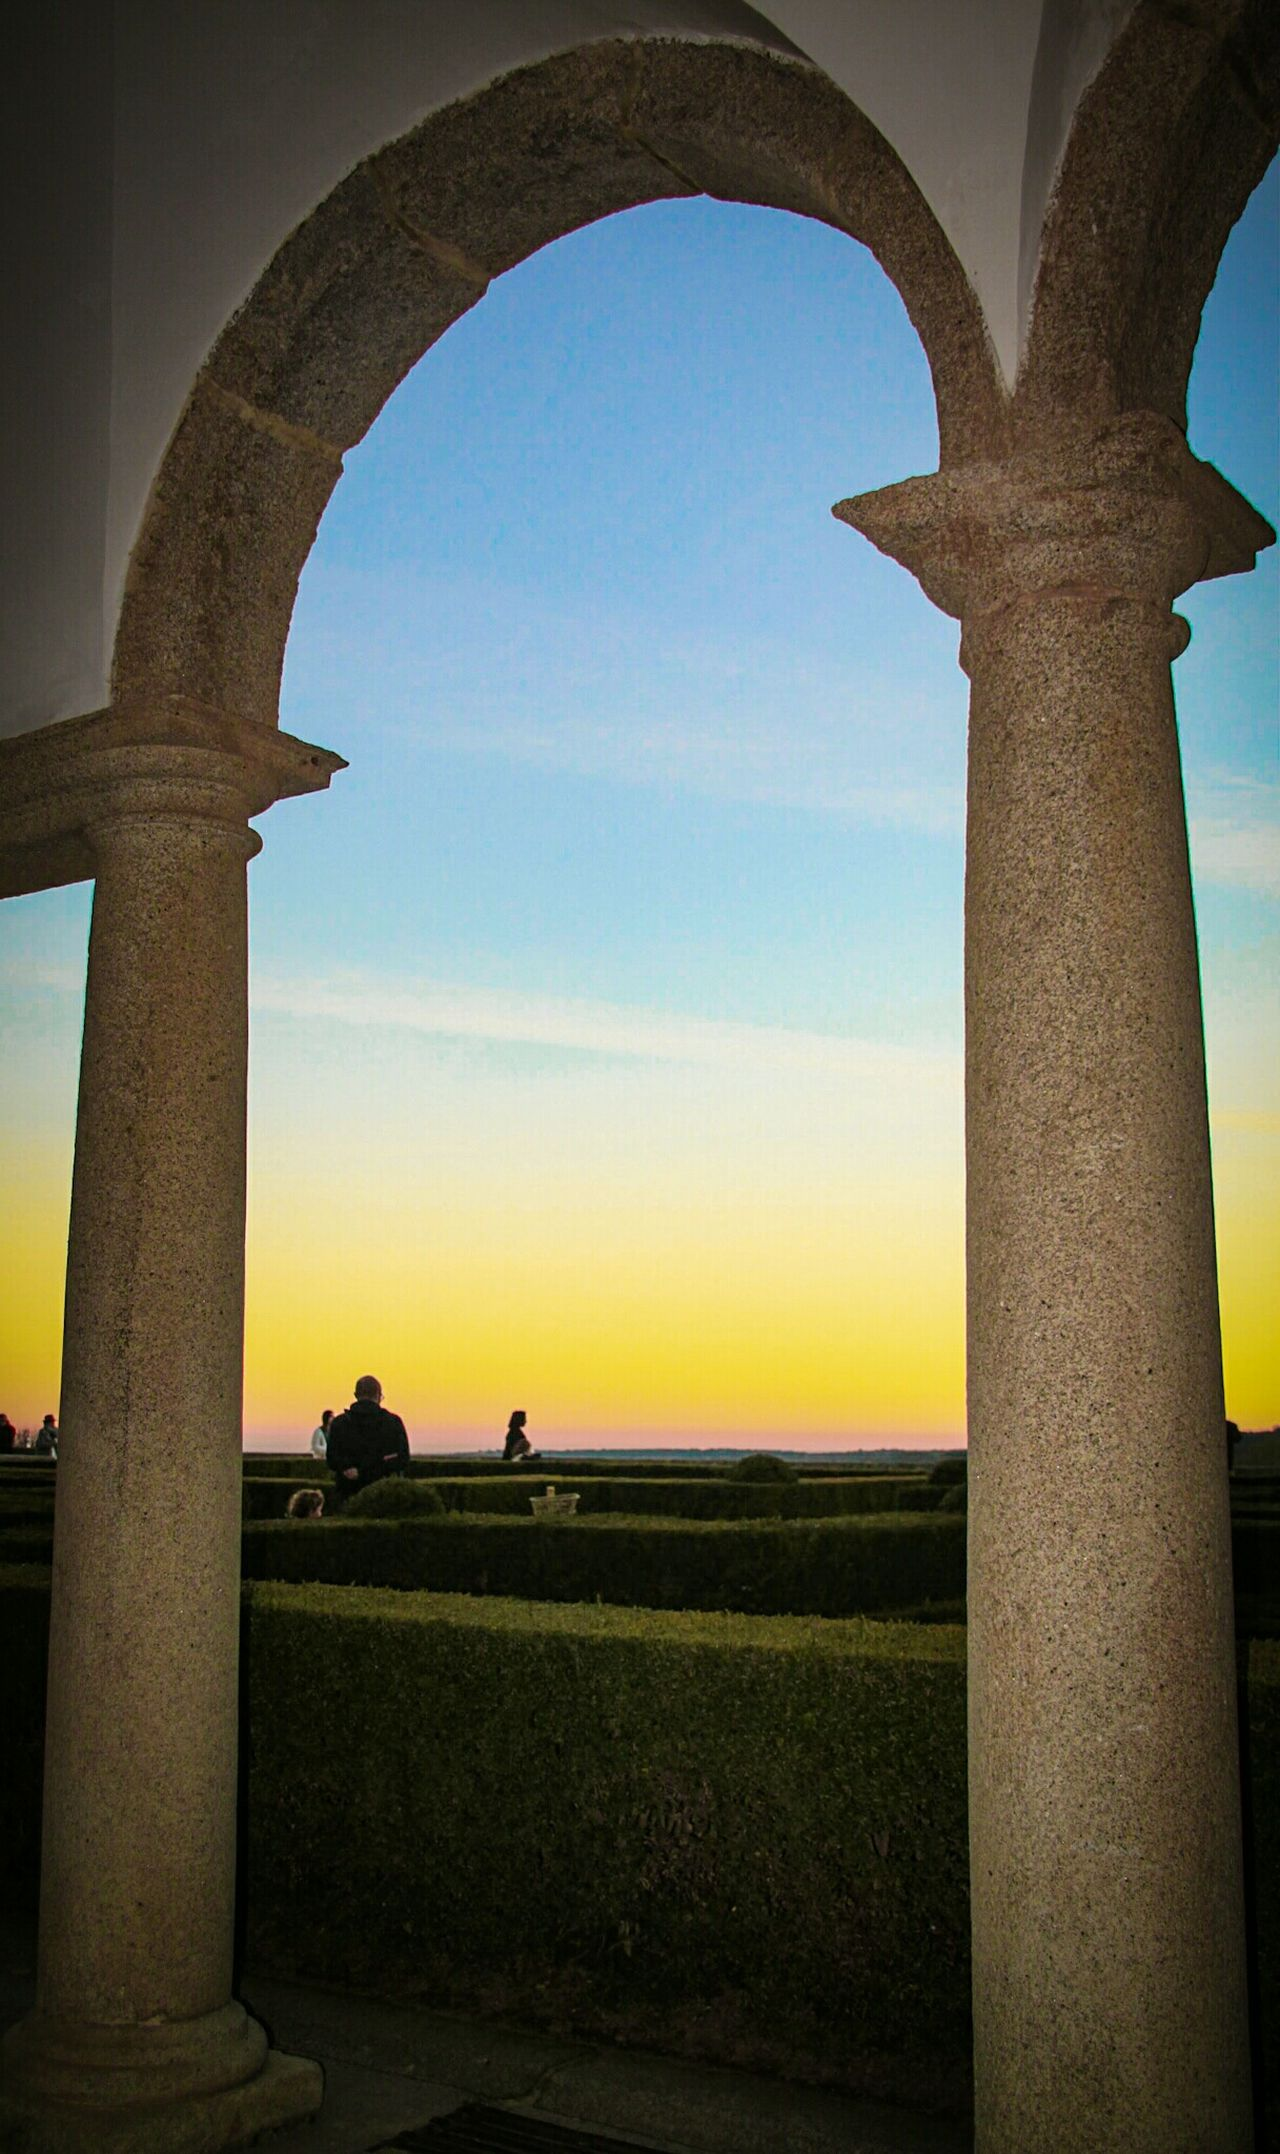 Arch Travel History Sky Sunset Architecture Scenics Outdoors Day Couple Watching The Sunset Sunset_collection Framed Elescorial San Lorenzo De El Escorial El Escorial Jardines Madrid Check This Out Malephotographerofthemonth Silhouette EyeEm Gallery